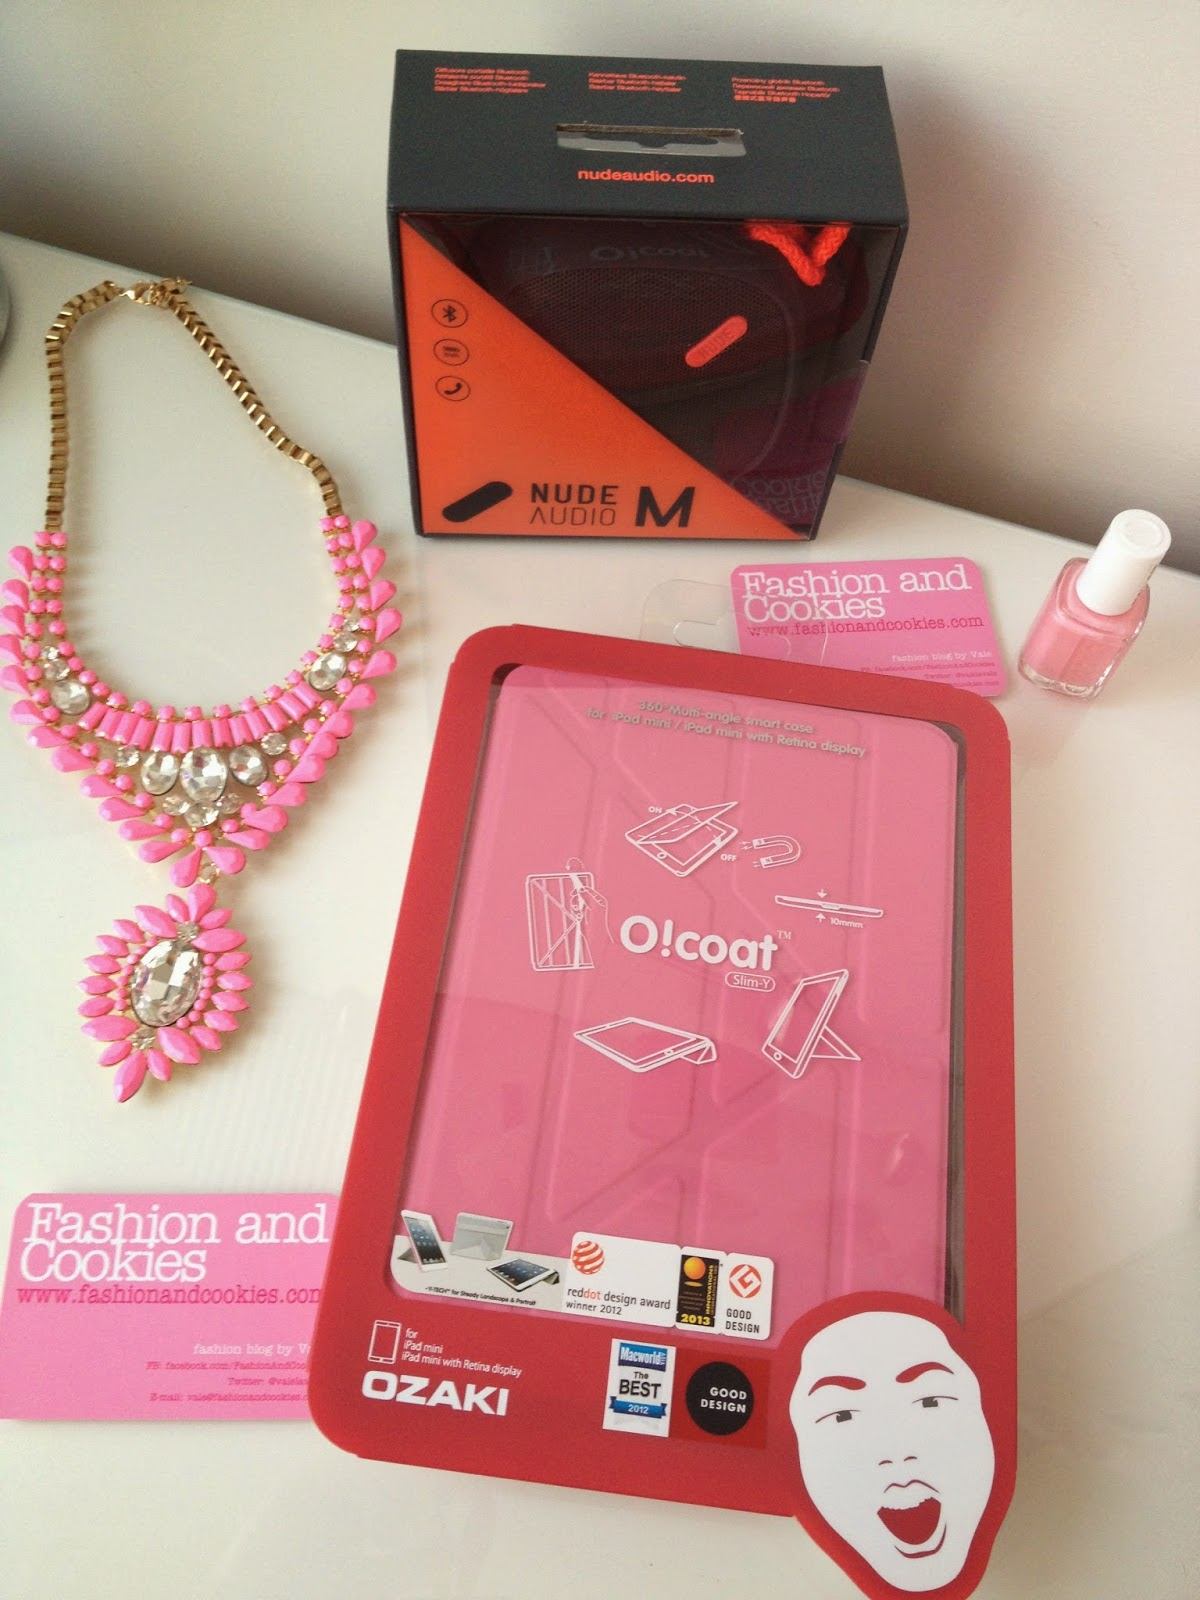 Ozaki slim cover review, Move M nudeaudio.com, L10trading, Fashion and Cookies, fashion blogger